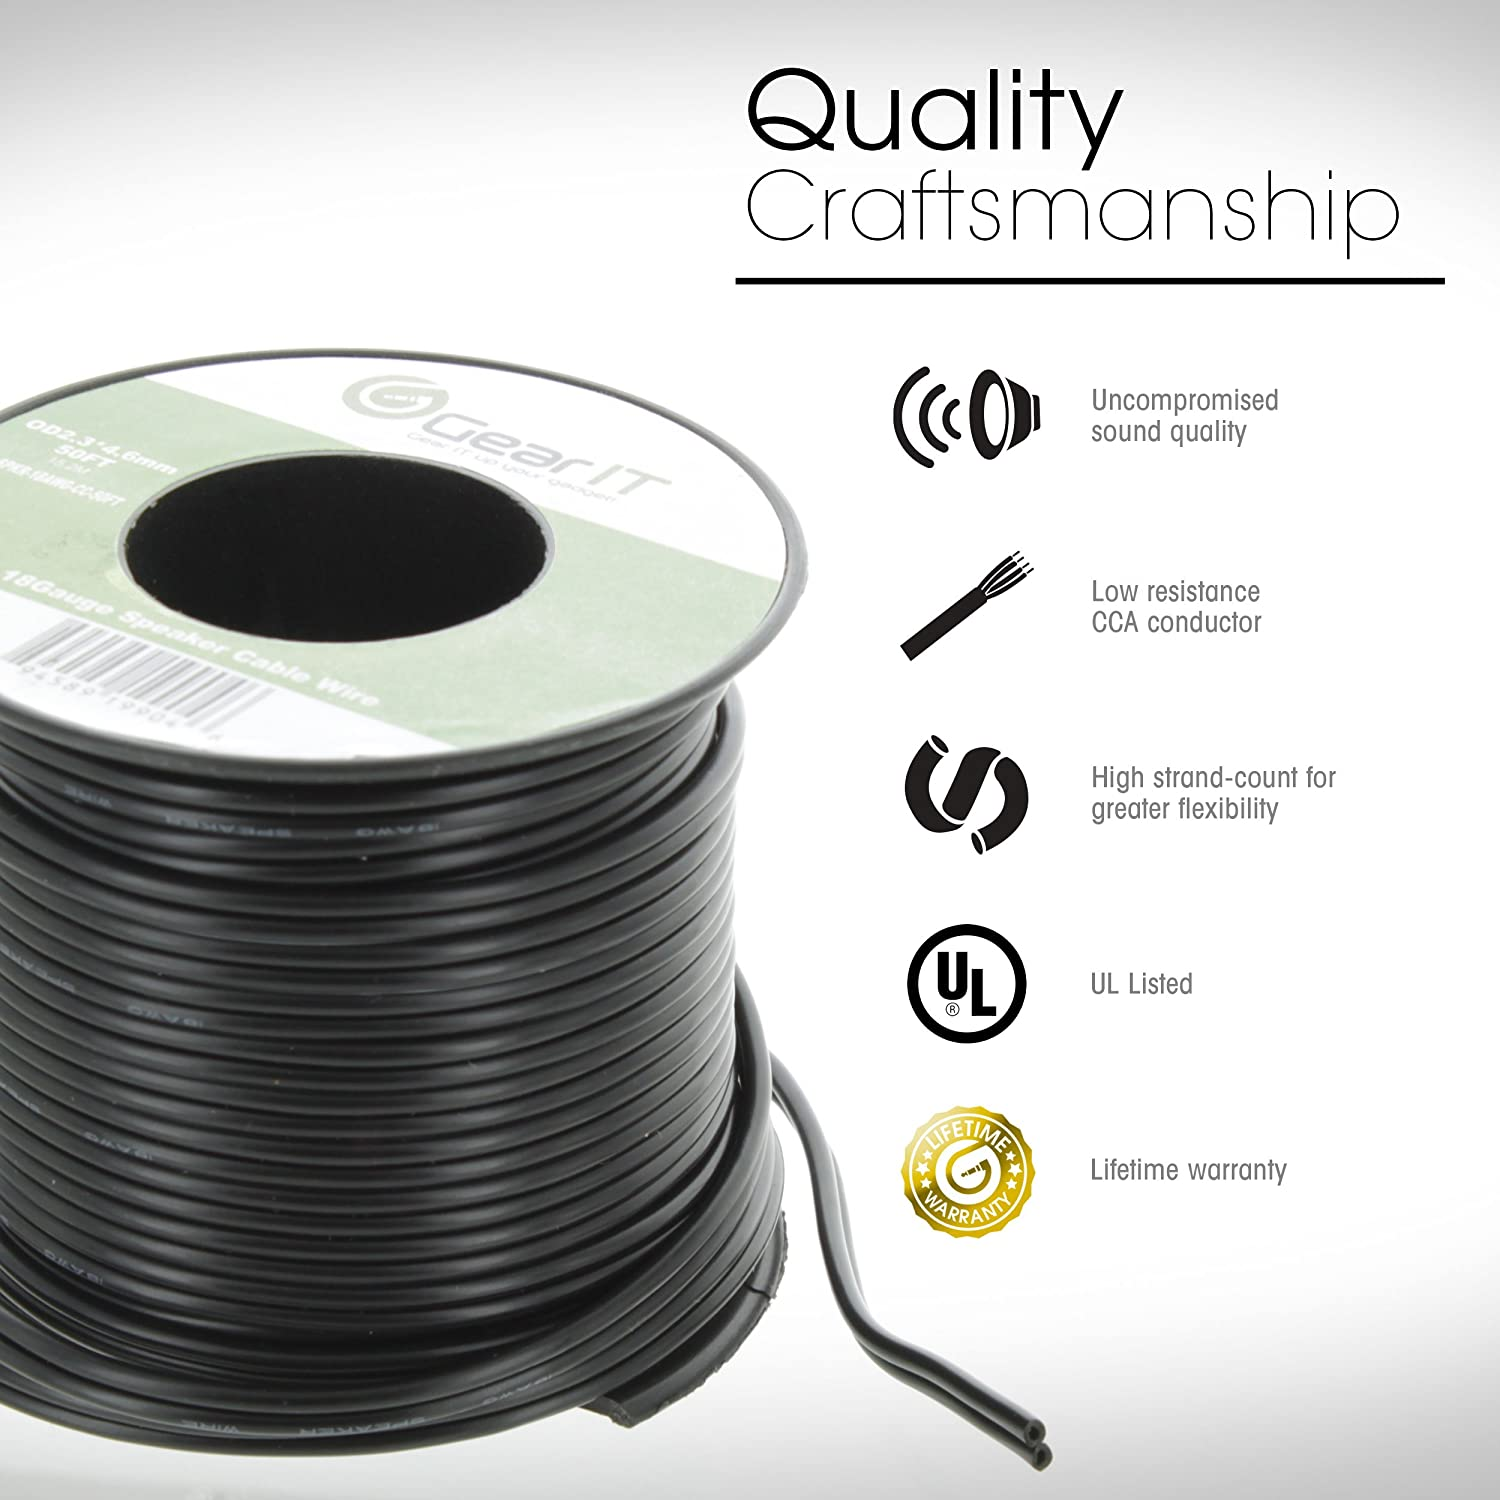 Amazon.com: GearIT Pro Series 14 AWG Gauge Speaker Wire Cable, 100 ...